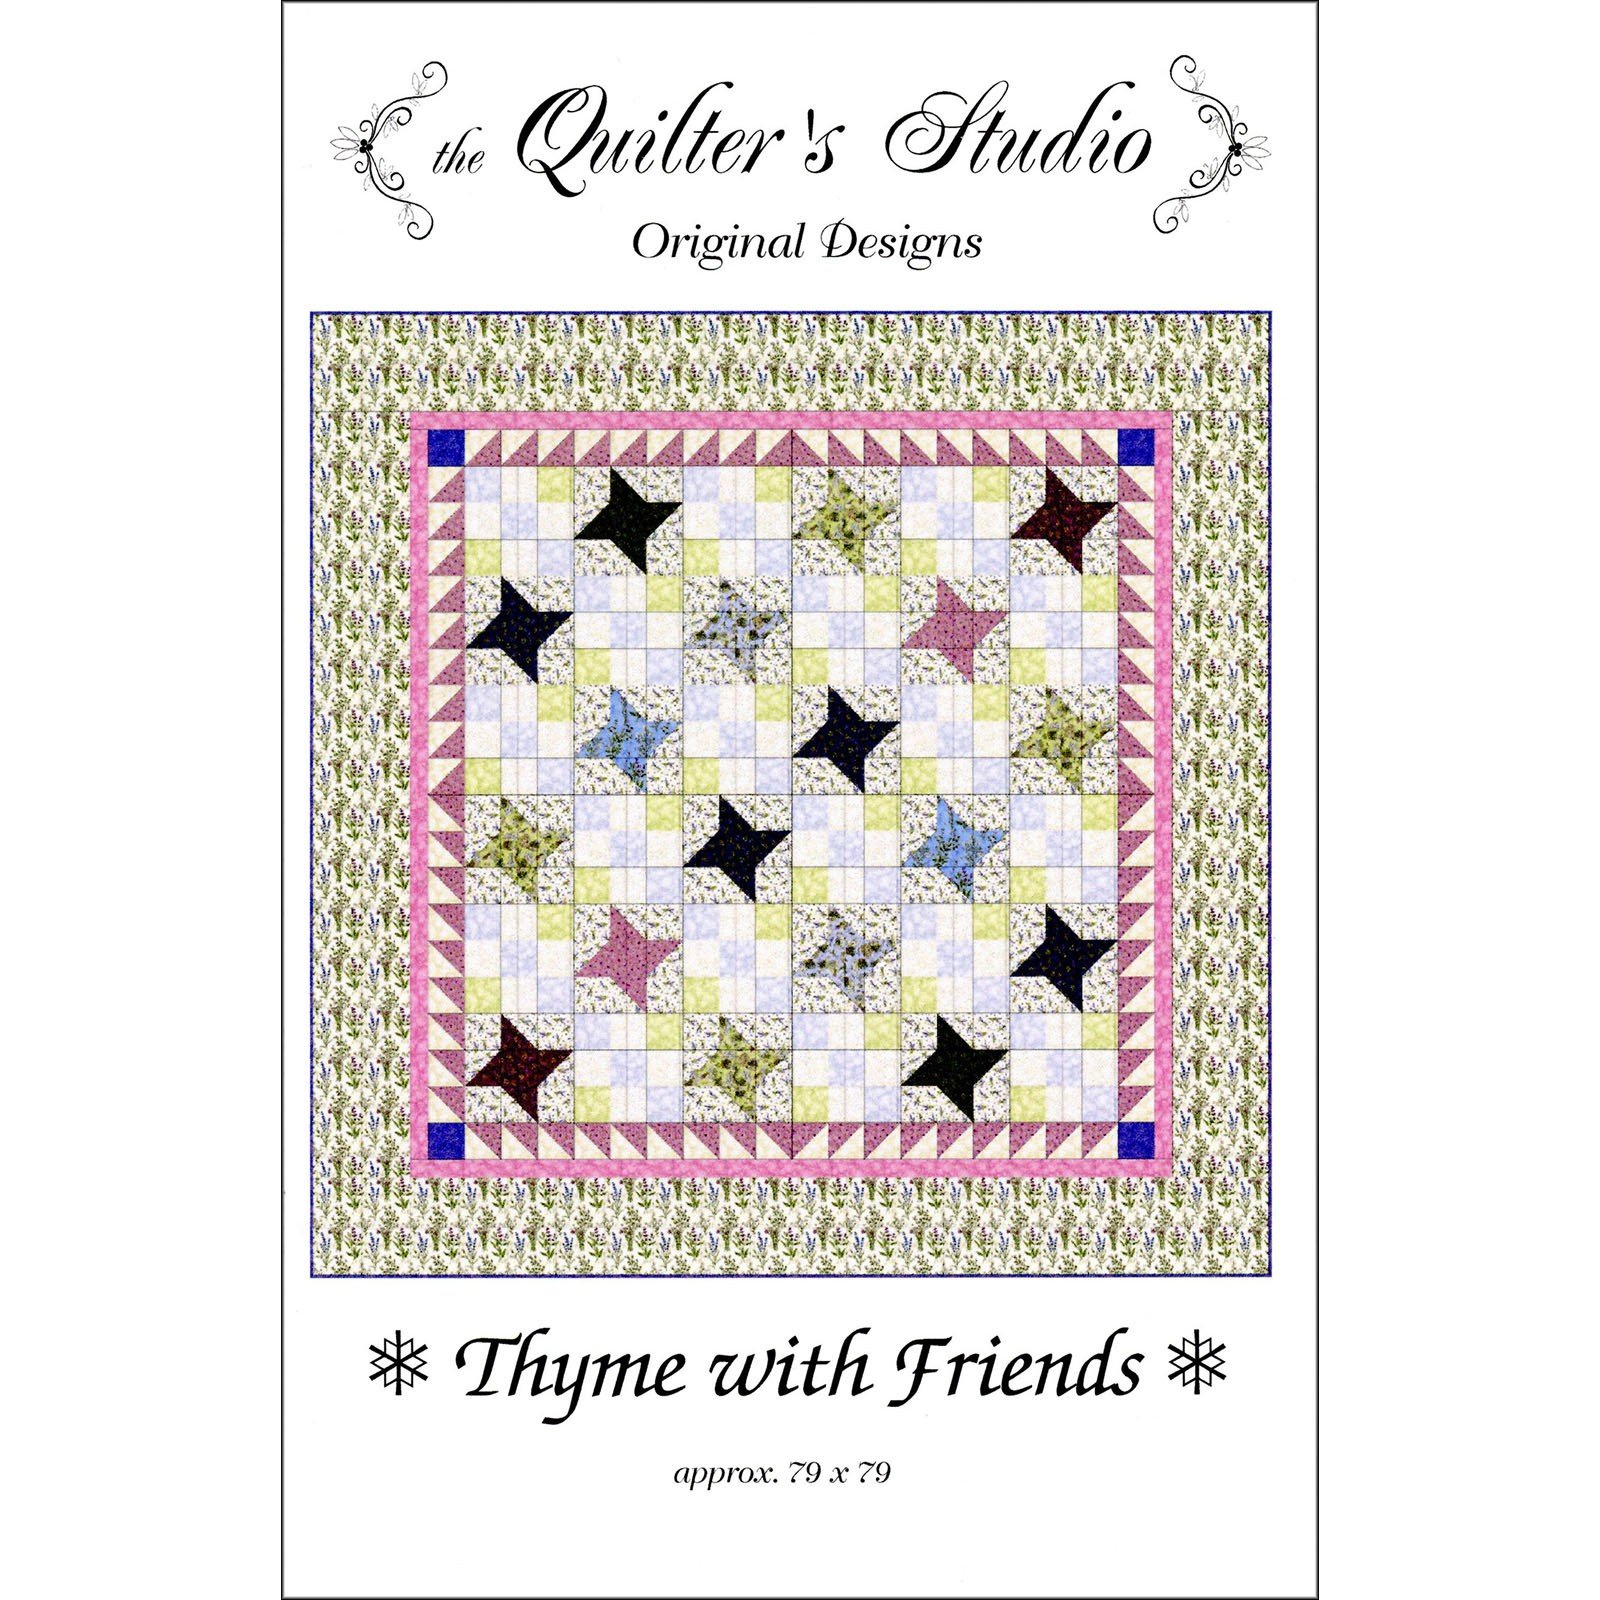 Thyme with Friends<br/>The Quilter's Studio